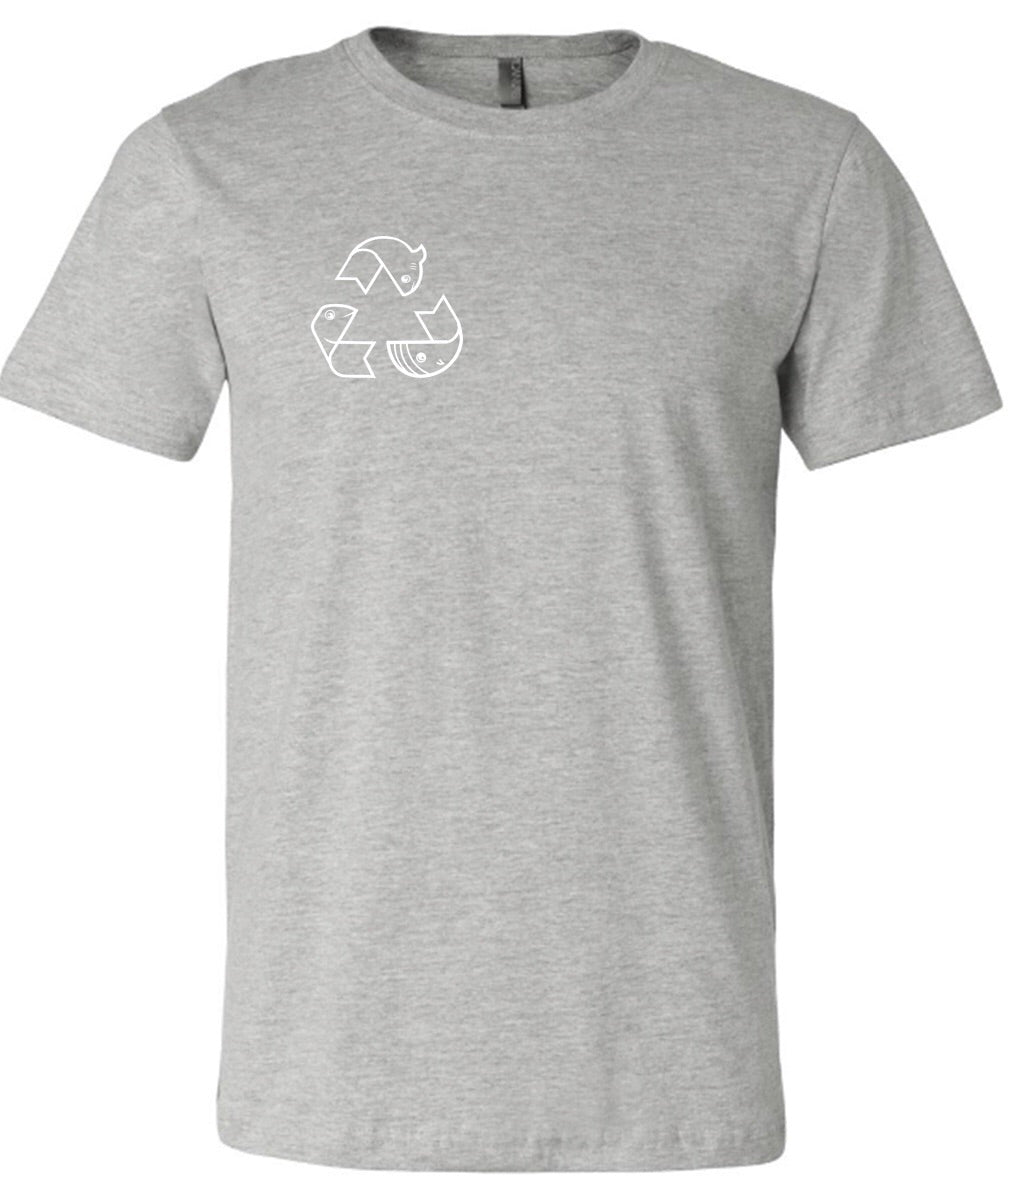 What Happens to the Ocean Happens to Us - Unisex Heather Gray T-shirt